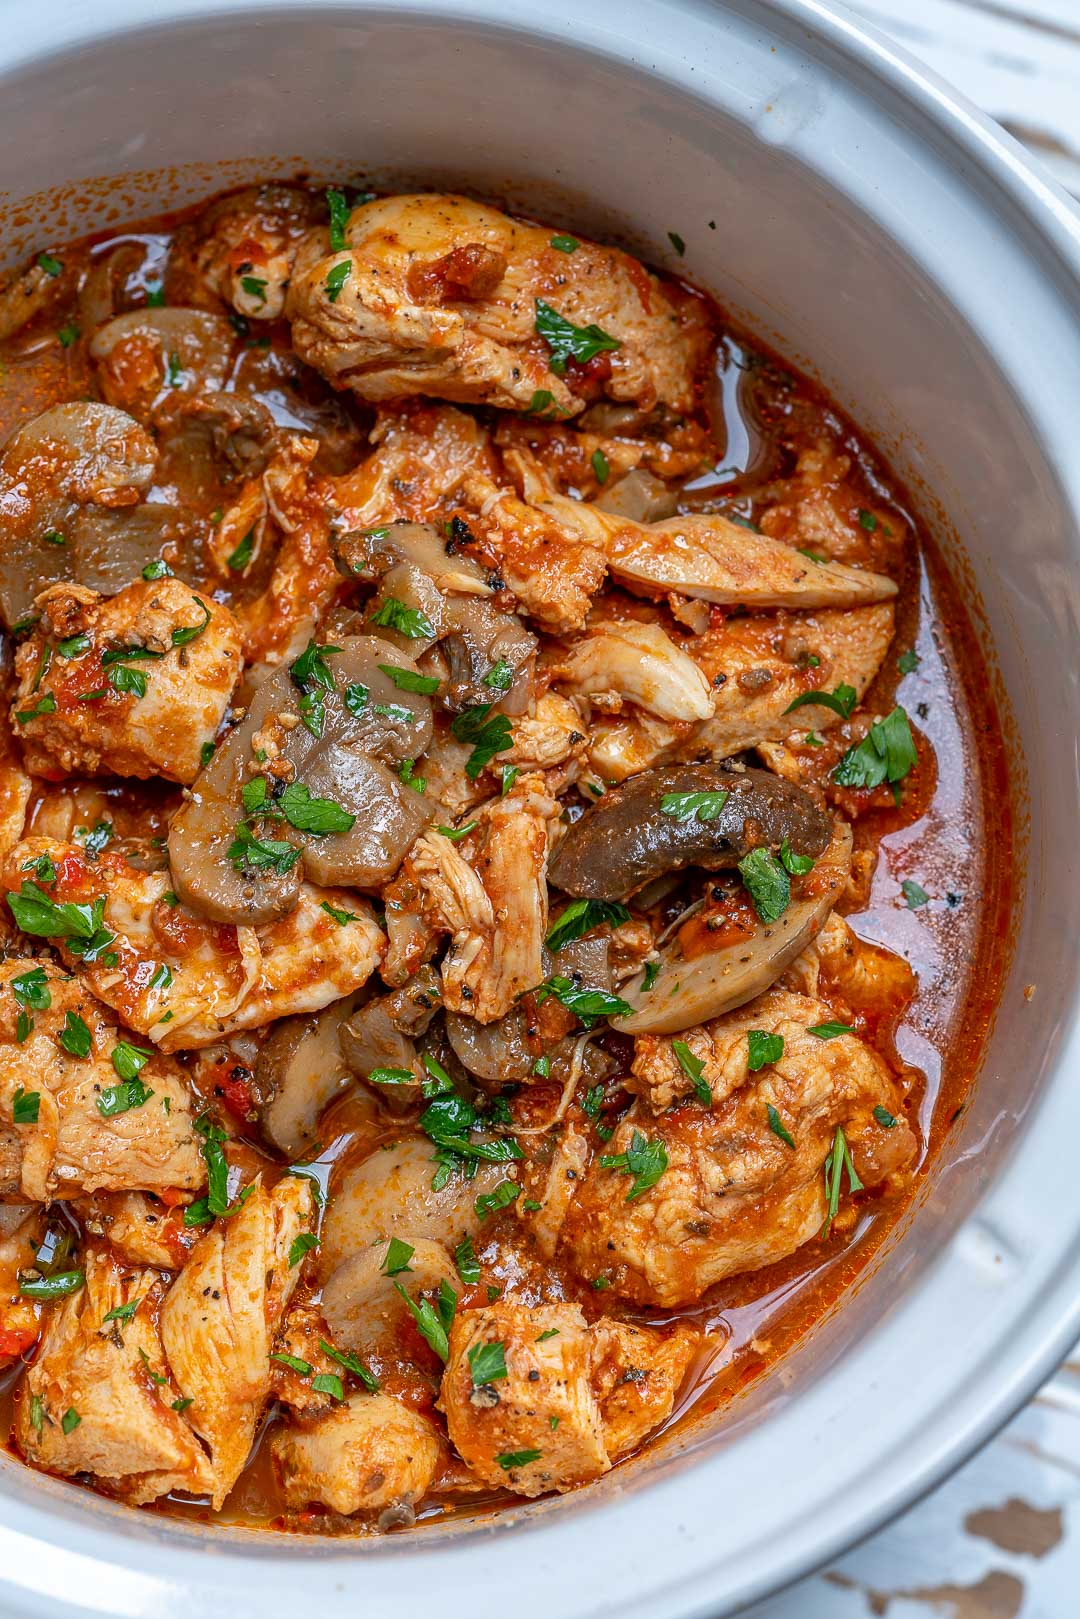 Try This Crockpot Chicken With Peppers And Mushrooms For Clean Eating The Cookbook Network